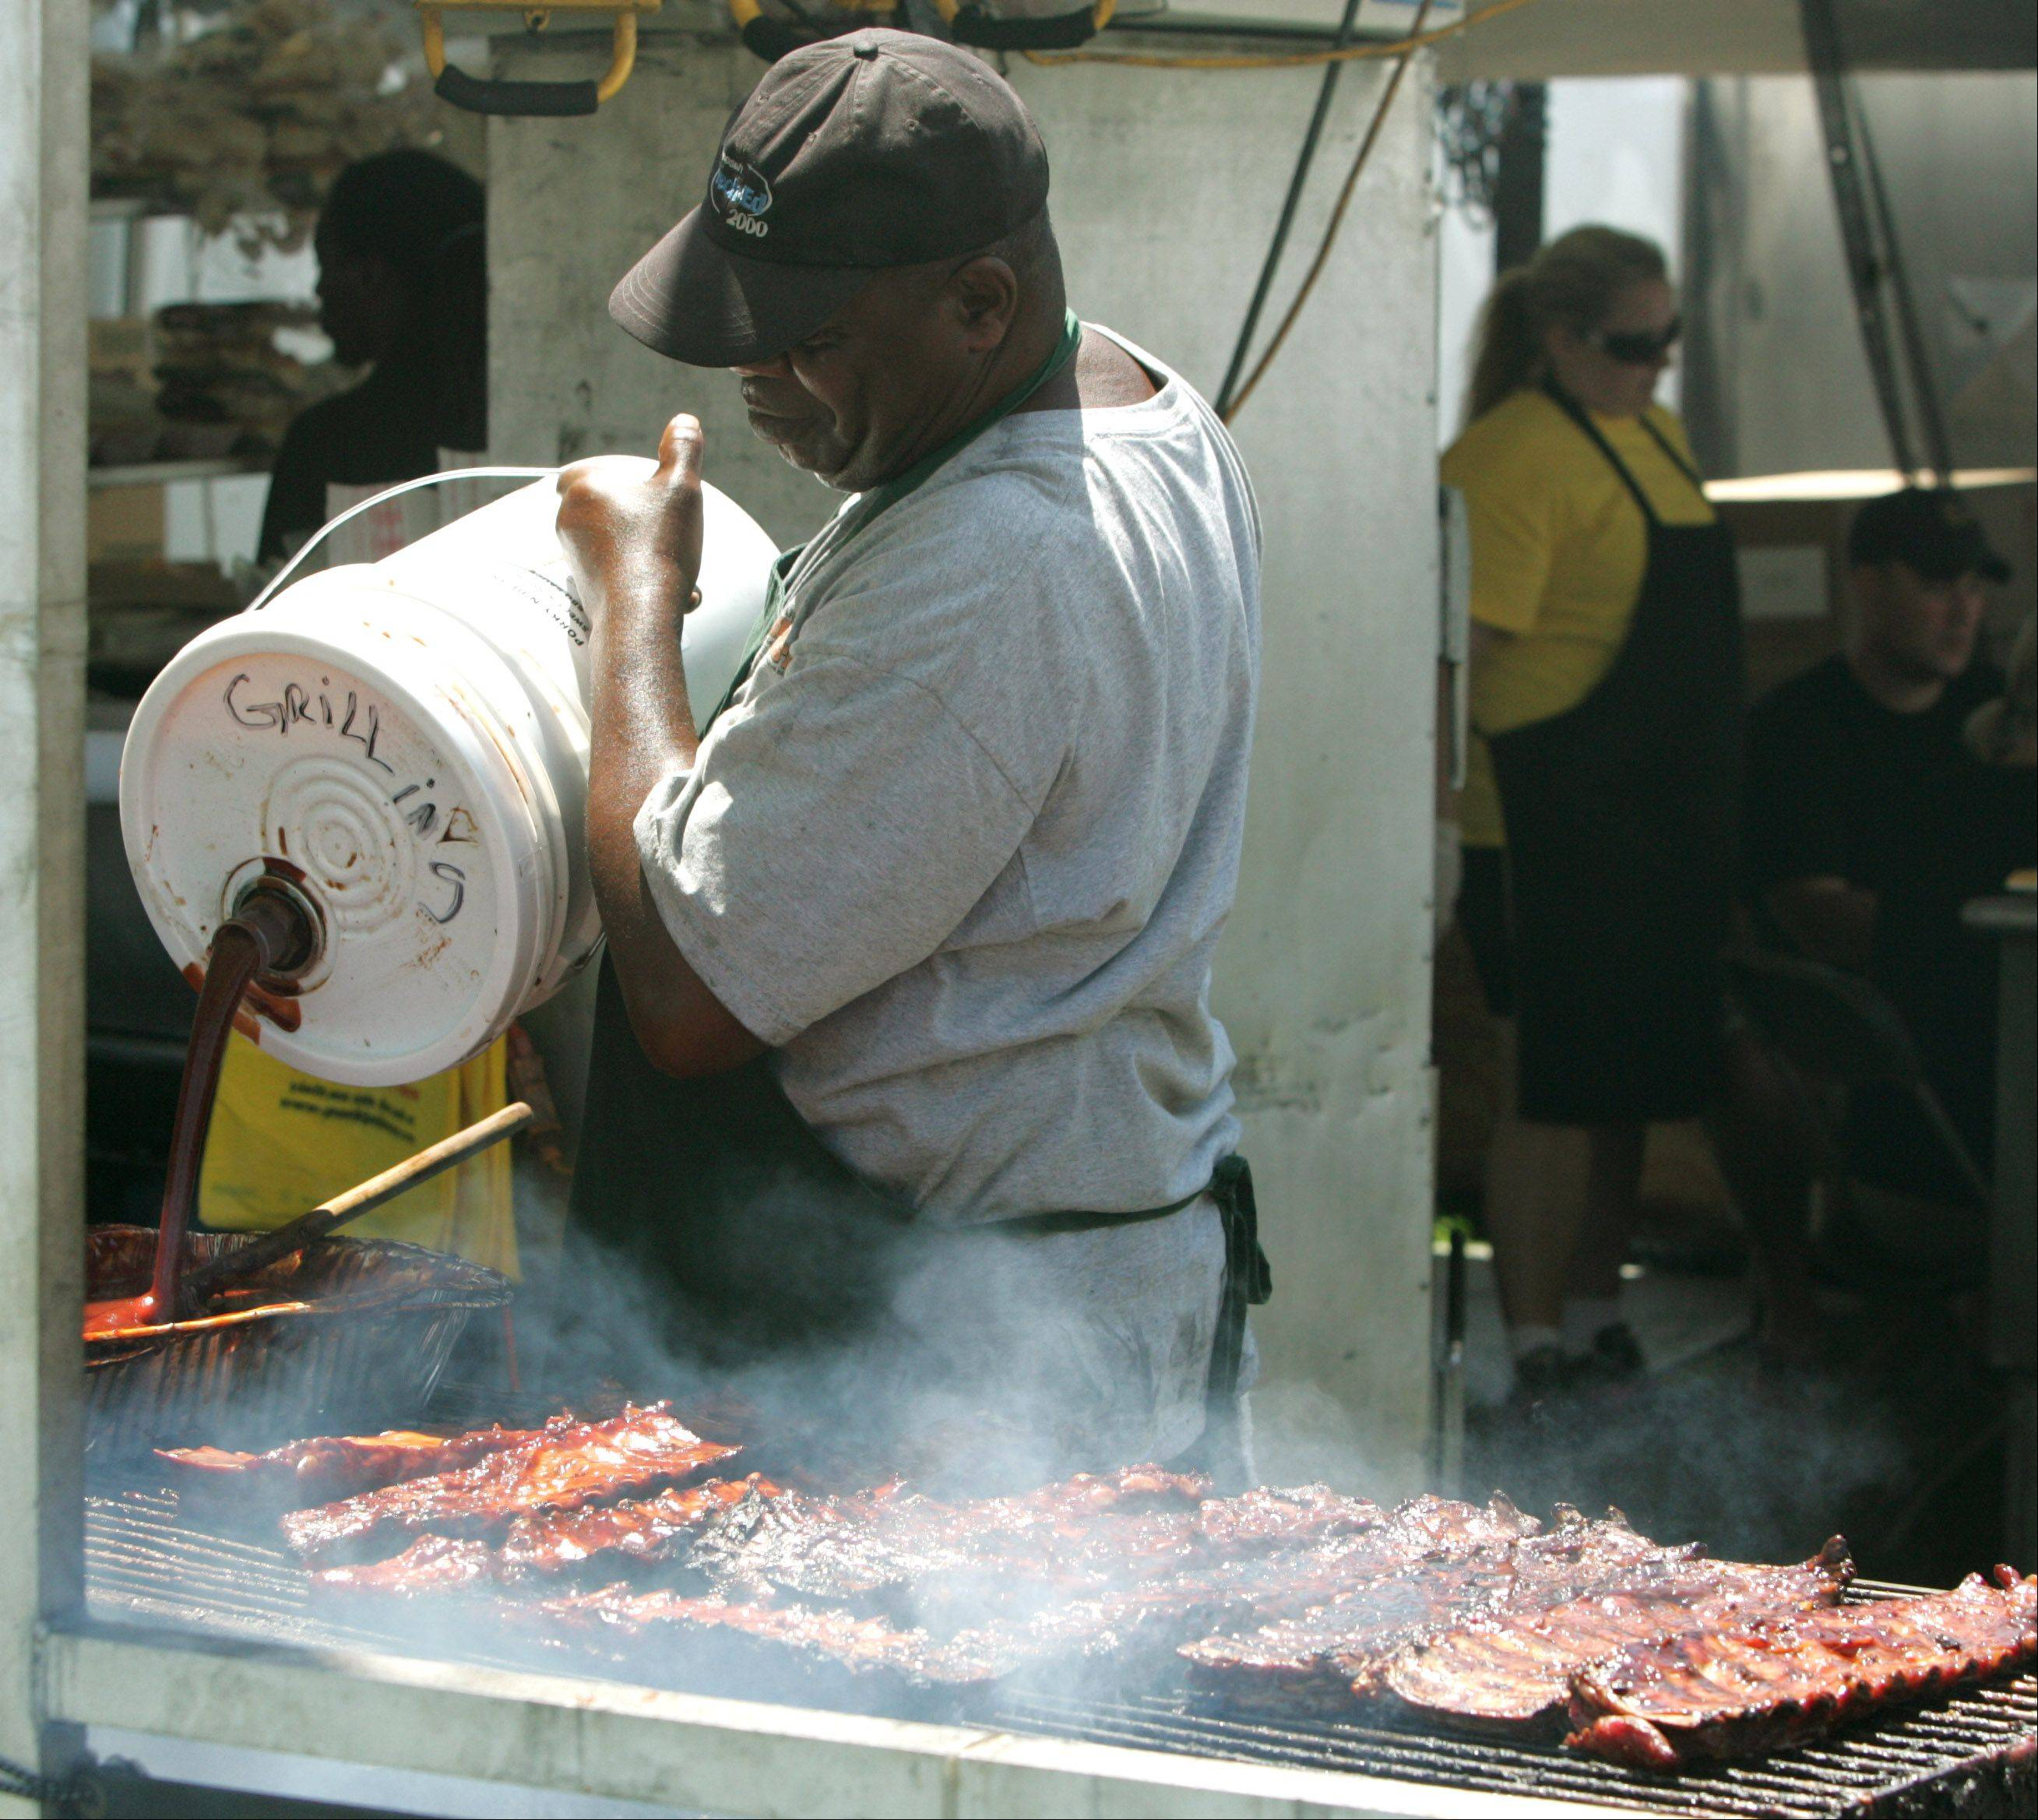 Cornell Simon heats barbecue sauce during the final day of Naperville's Ribfest. Simon is from Porky N Beans of Port Saint Lucie, Florida.